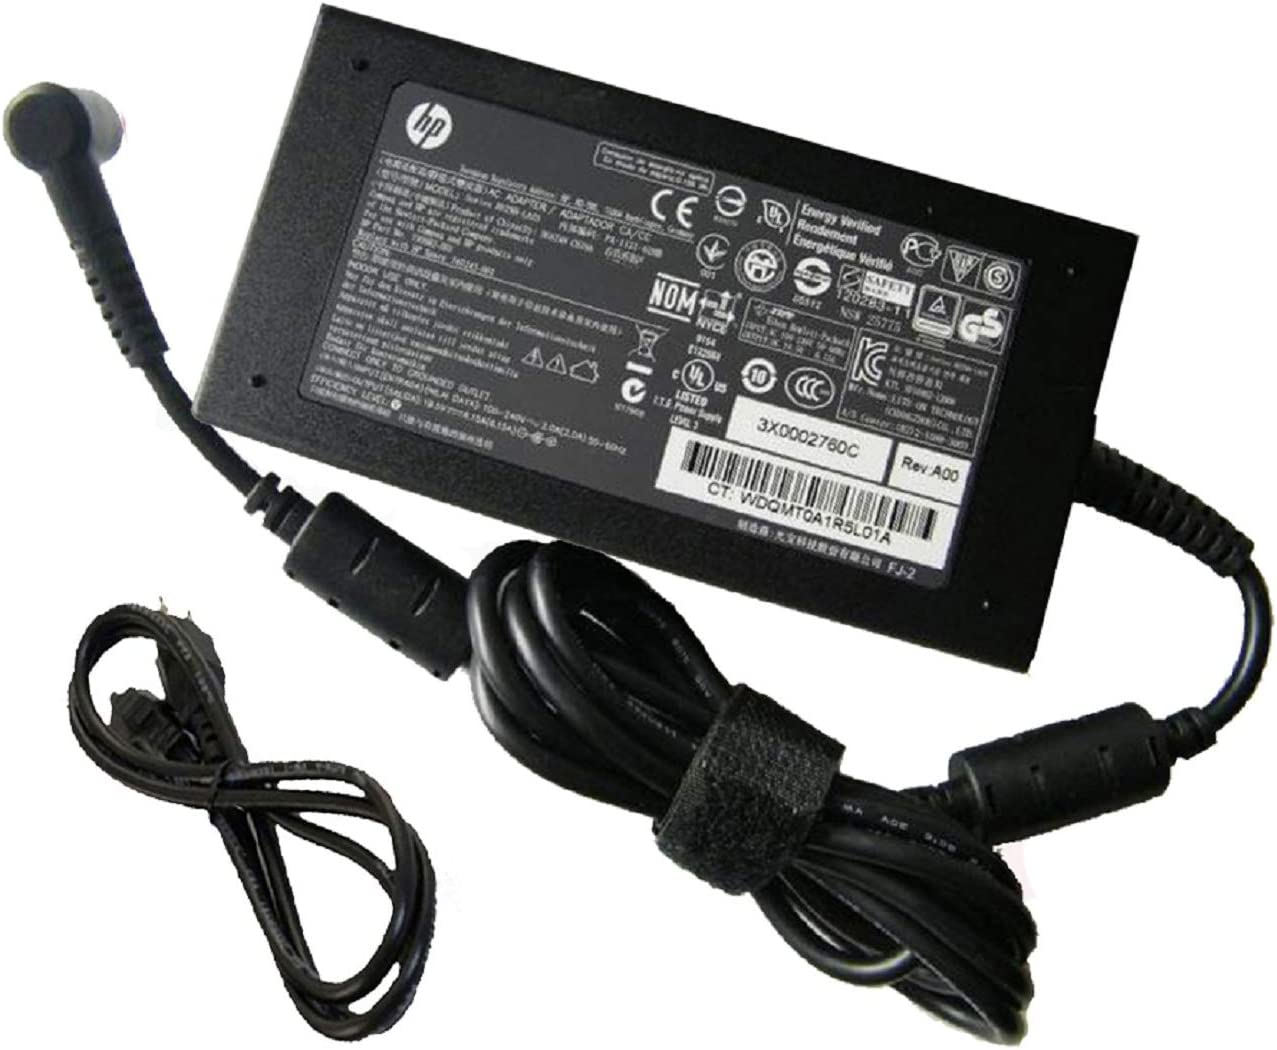 UpBright AC Adapter Compatible with HP 732811-002 A120A07DH 732811-001 732811-003 709984-001 Spare 710415-001 HSTNN-LA25 ADP-120ZB R33030 Omen Pro 15 Envy 17-n 17-R 15T-Q 19.5V 6.15A 120W Power Supply